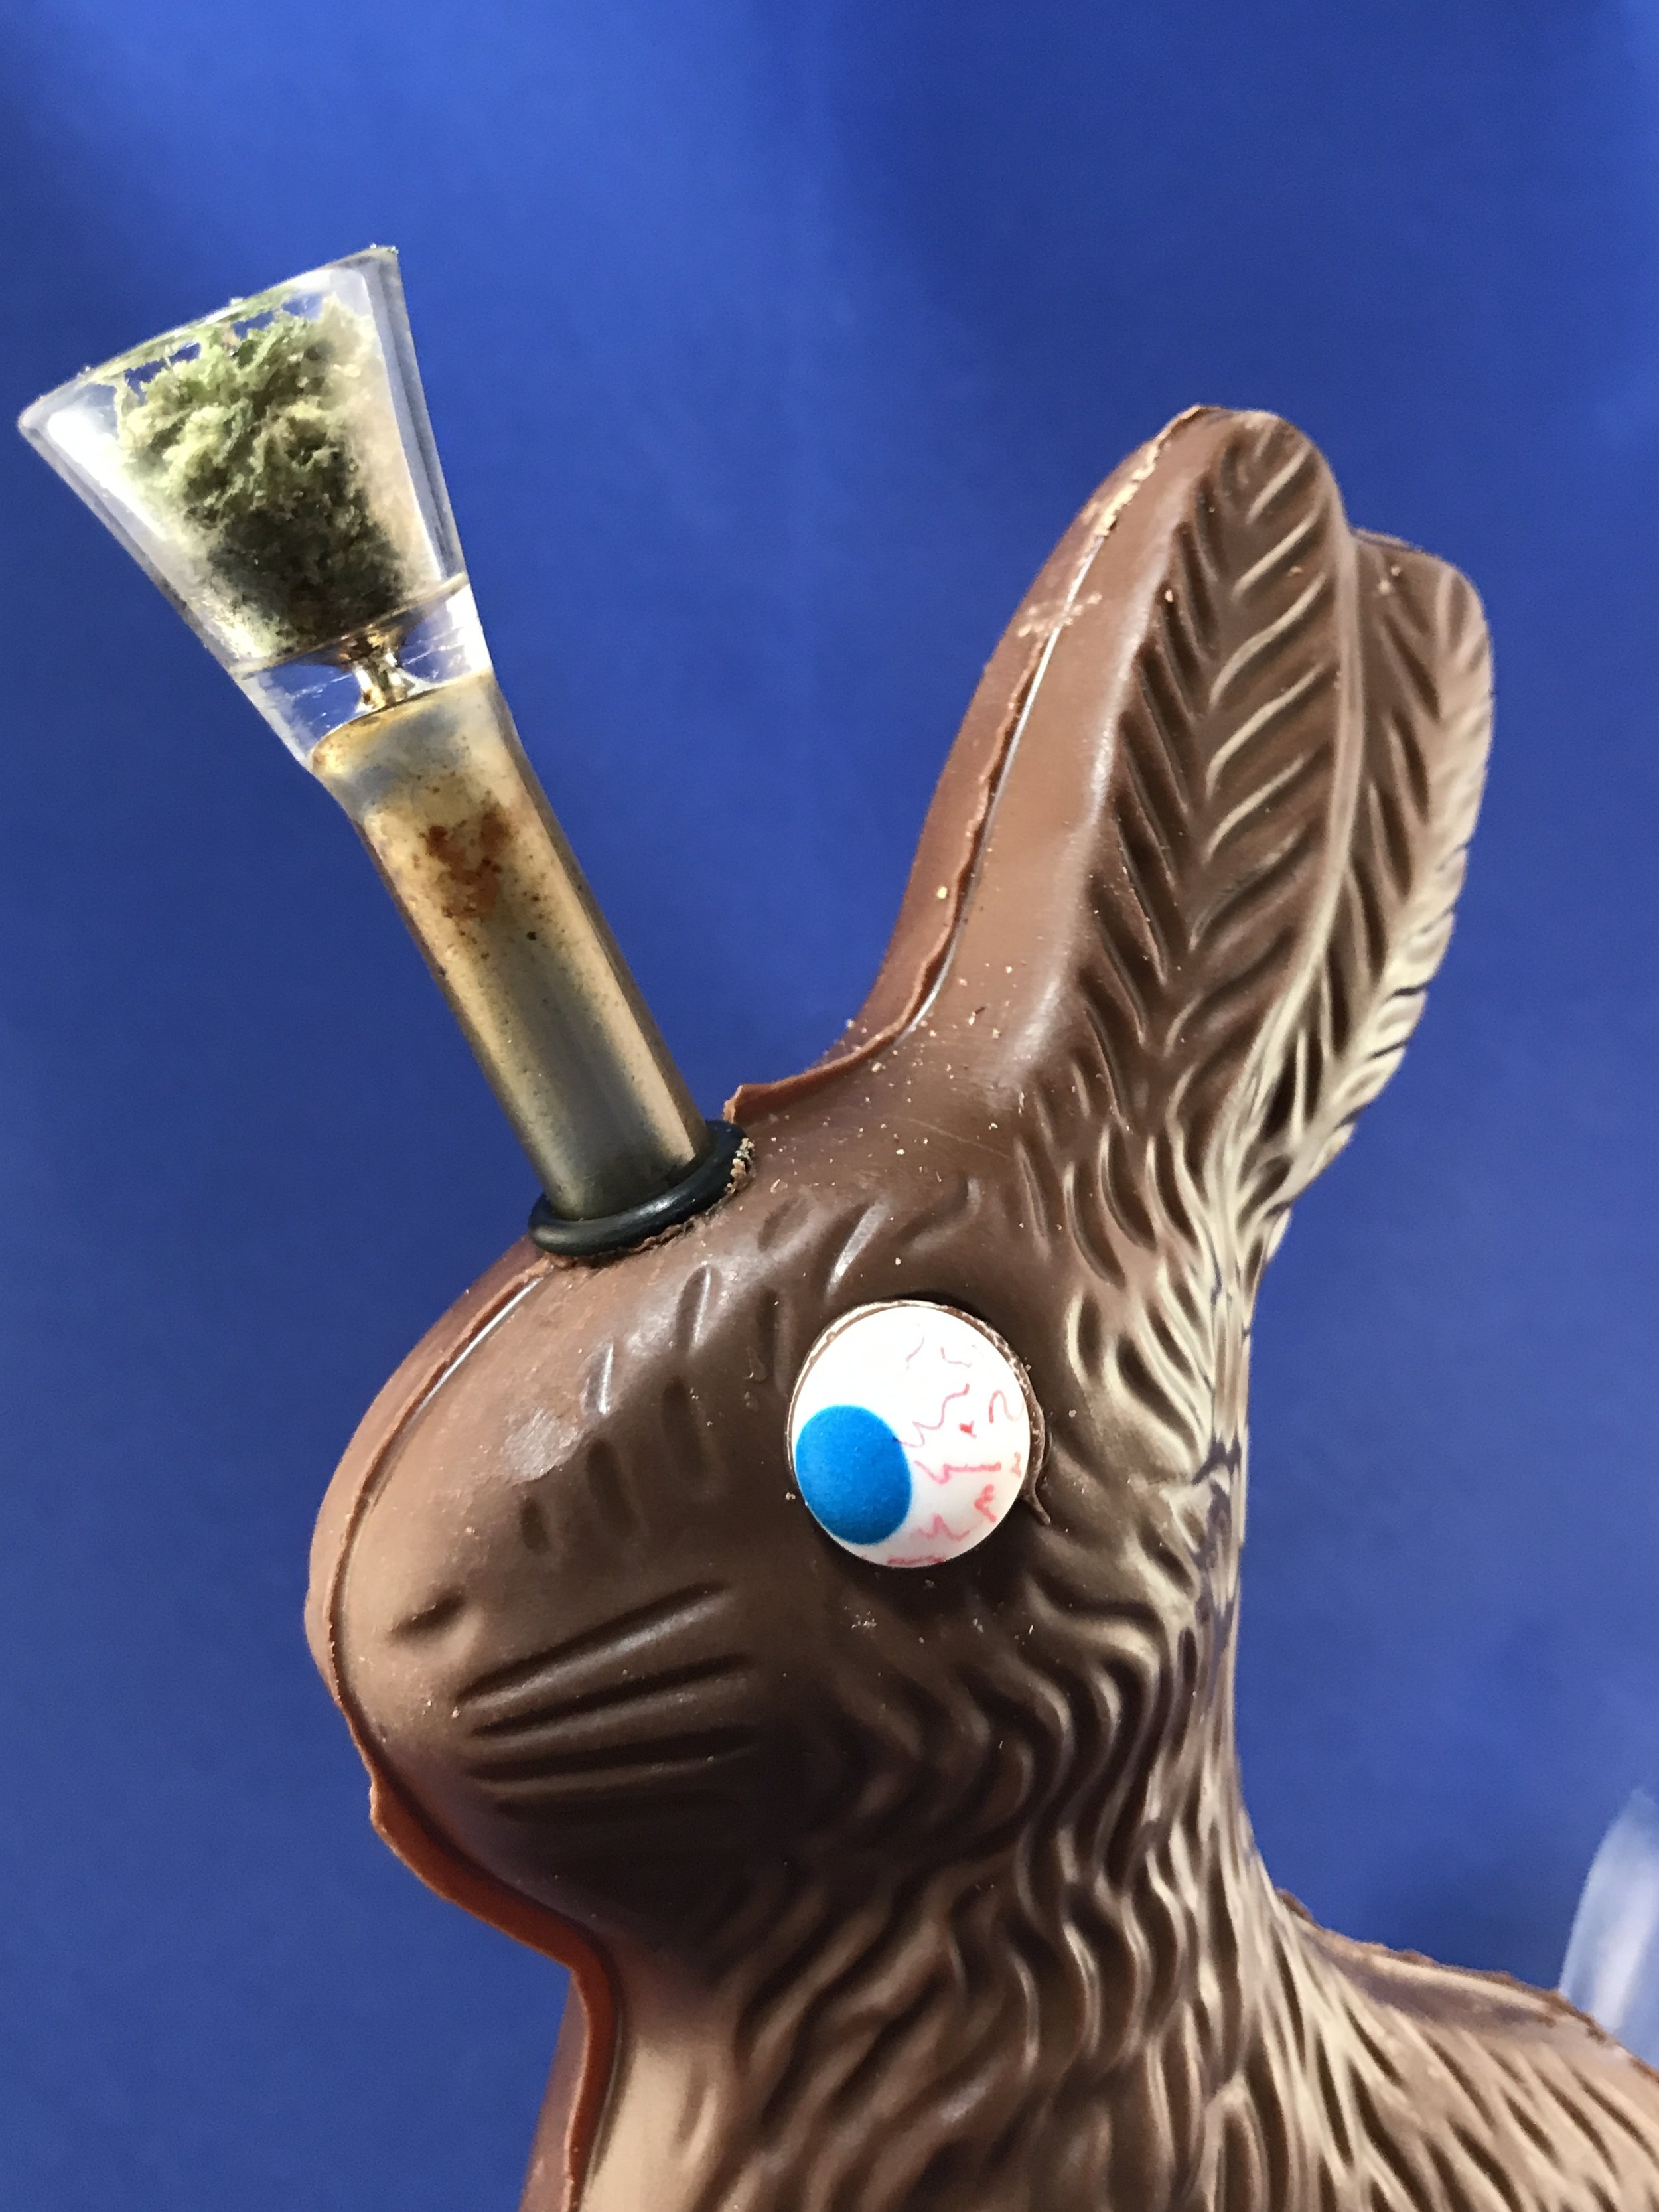 Stoner Crafts: DIY Chocolate Easter Bunny Bong by Chronic Crafter